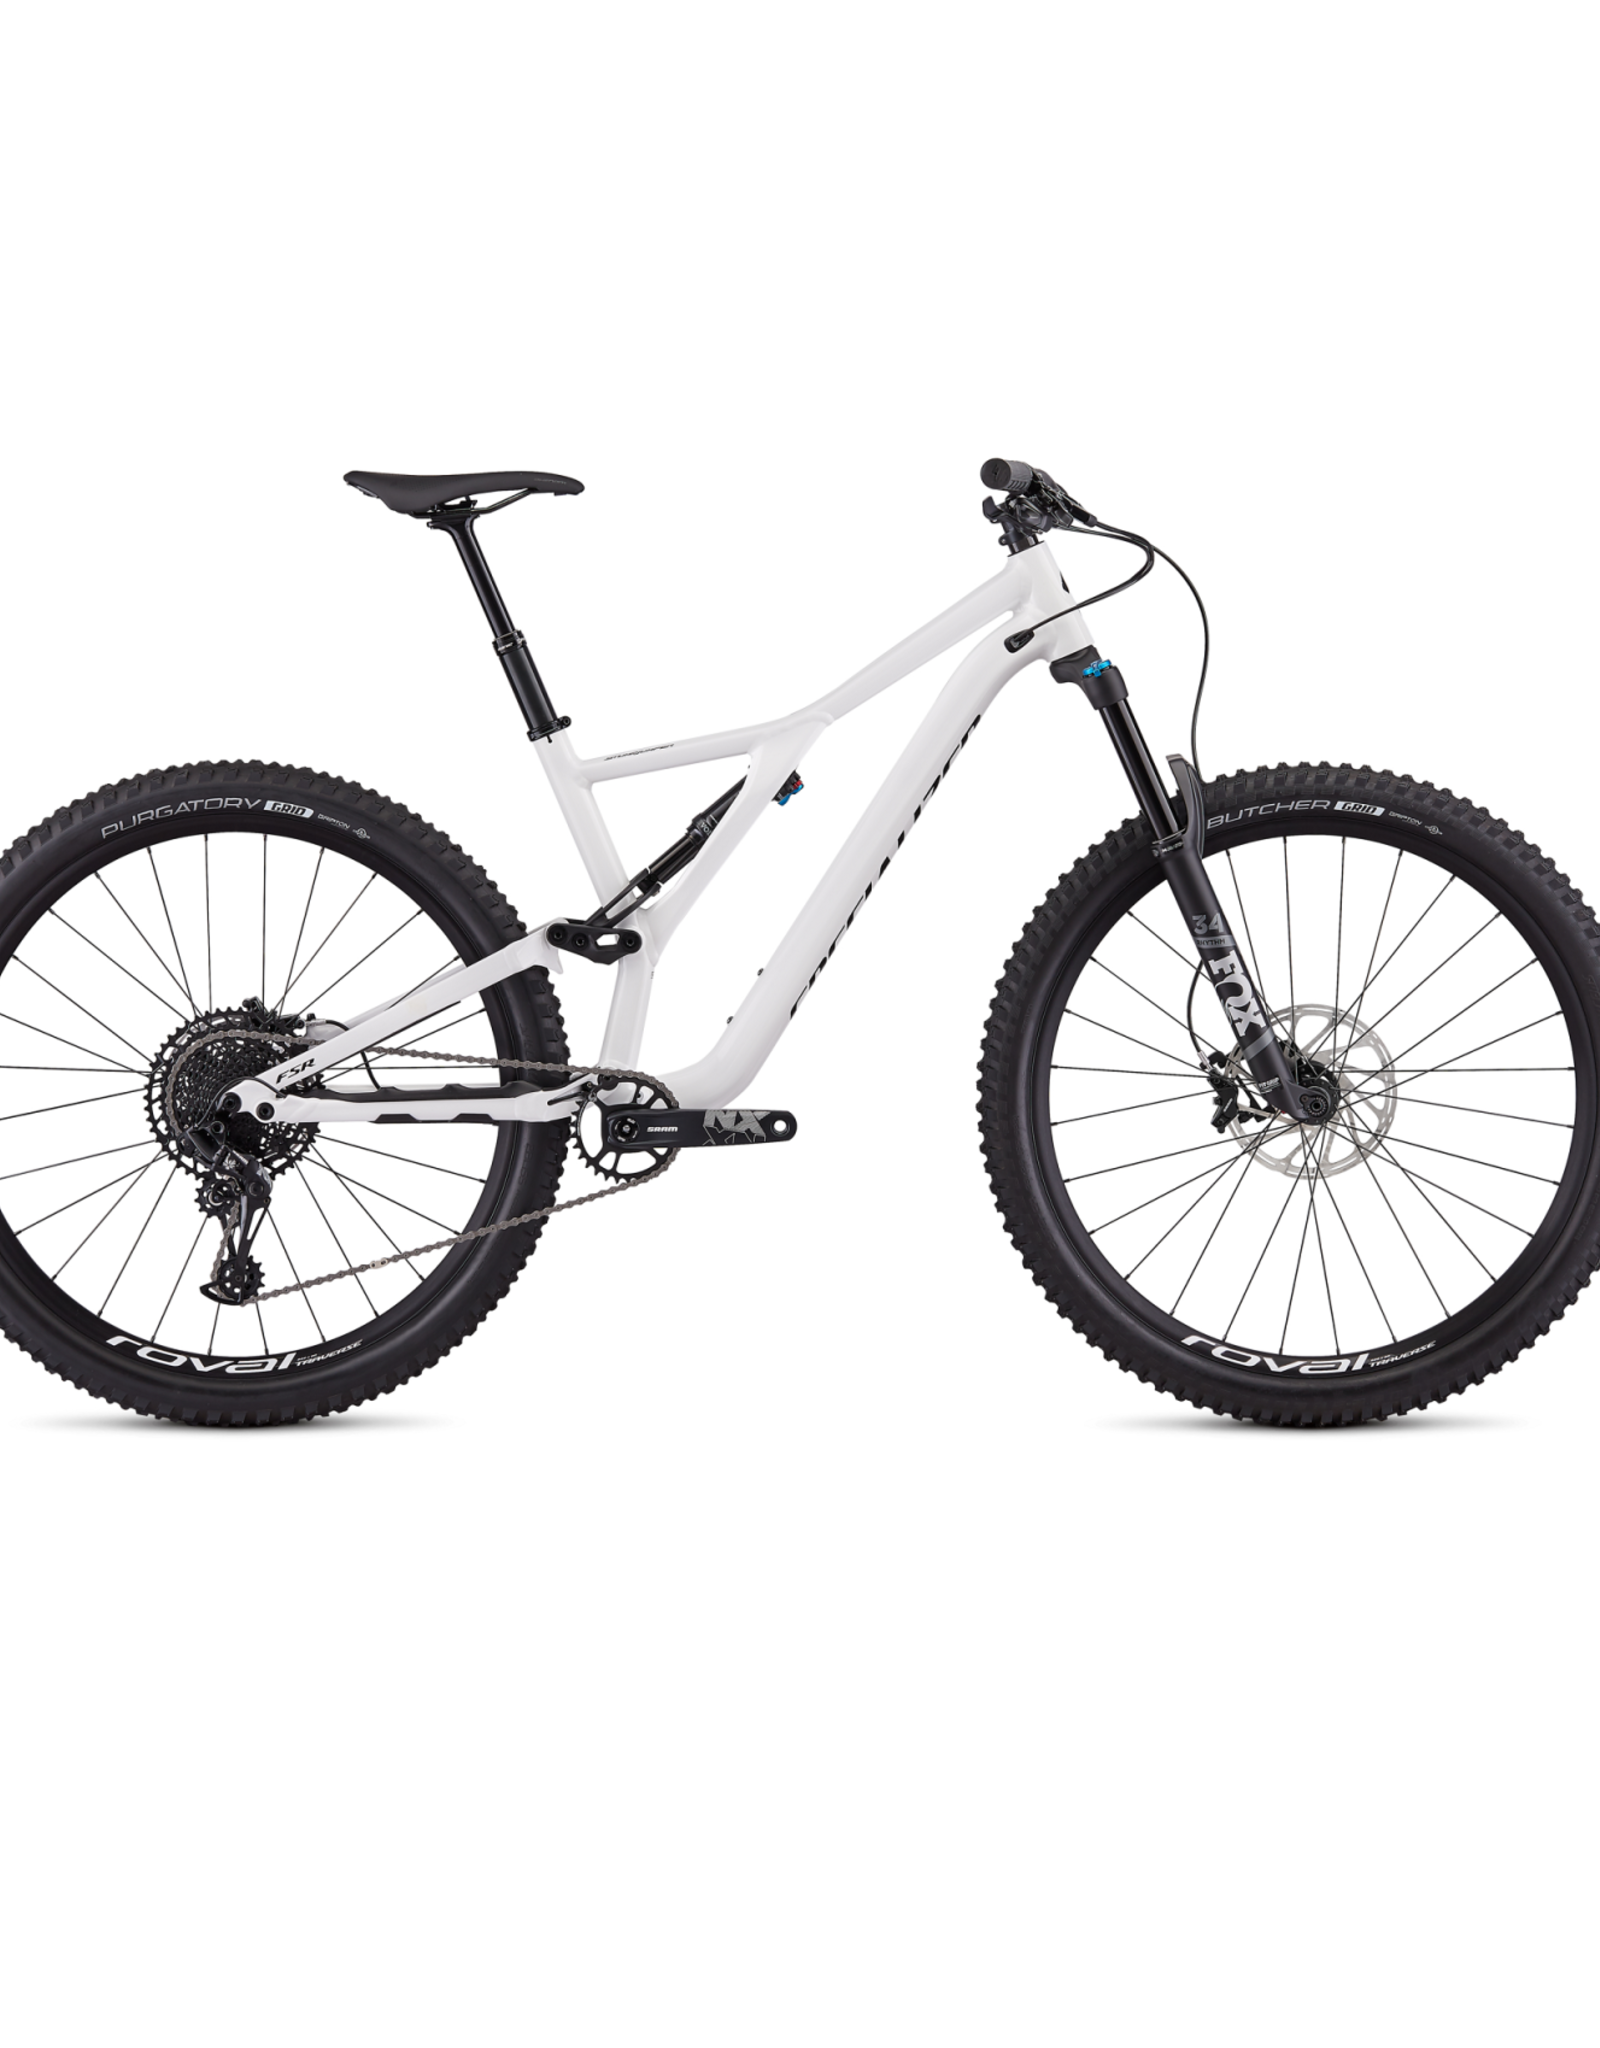 Specialized Specialized Stumpjumper FSR Comp 27.5 12-Speed 2019 White/Black Bicycle L